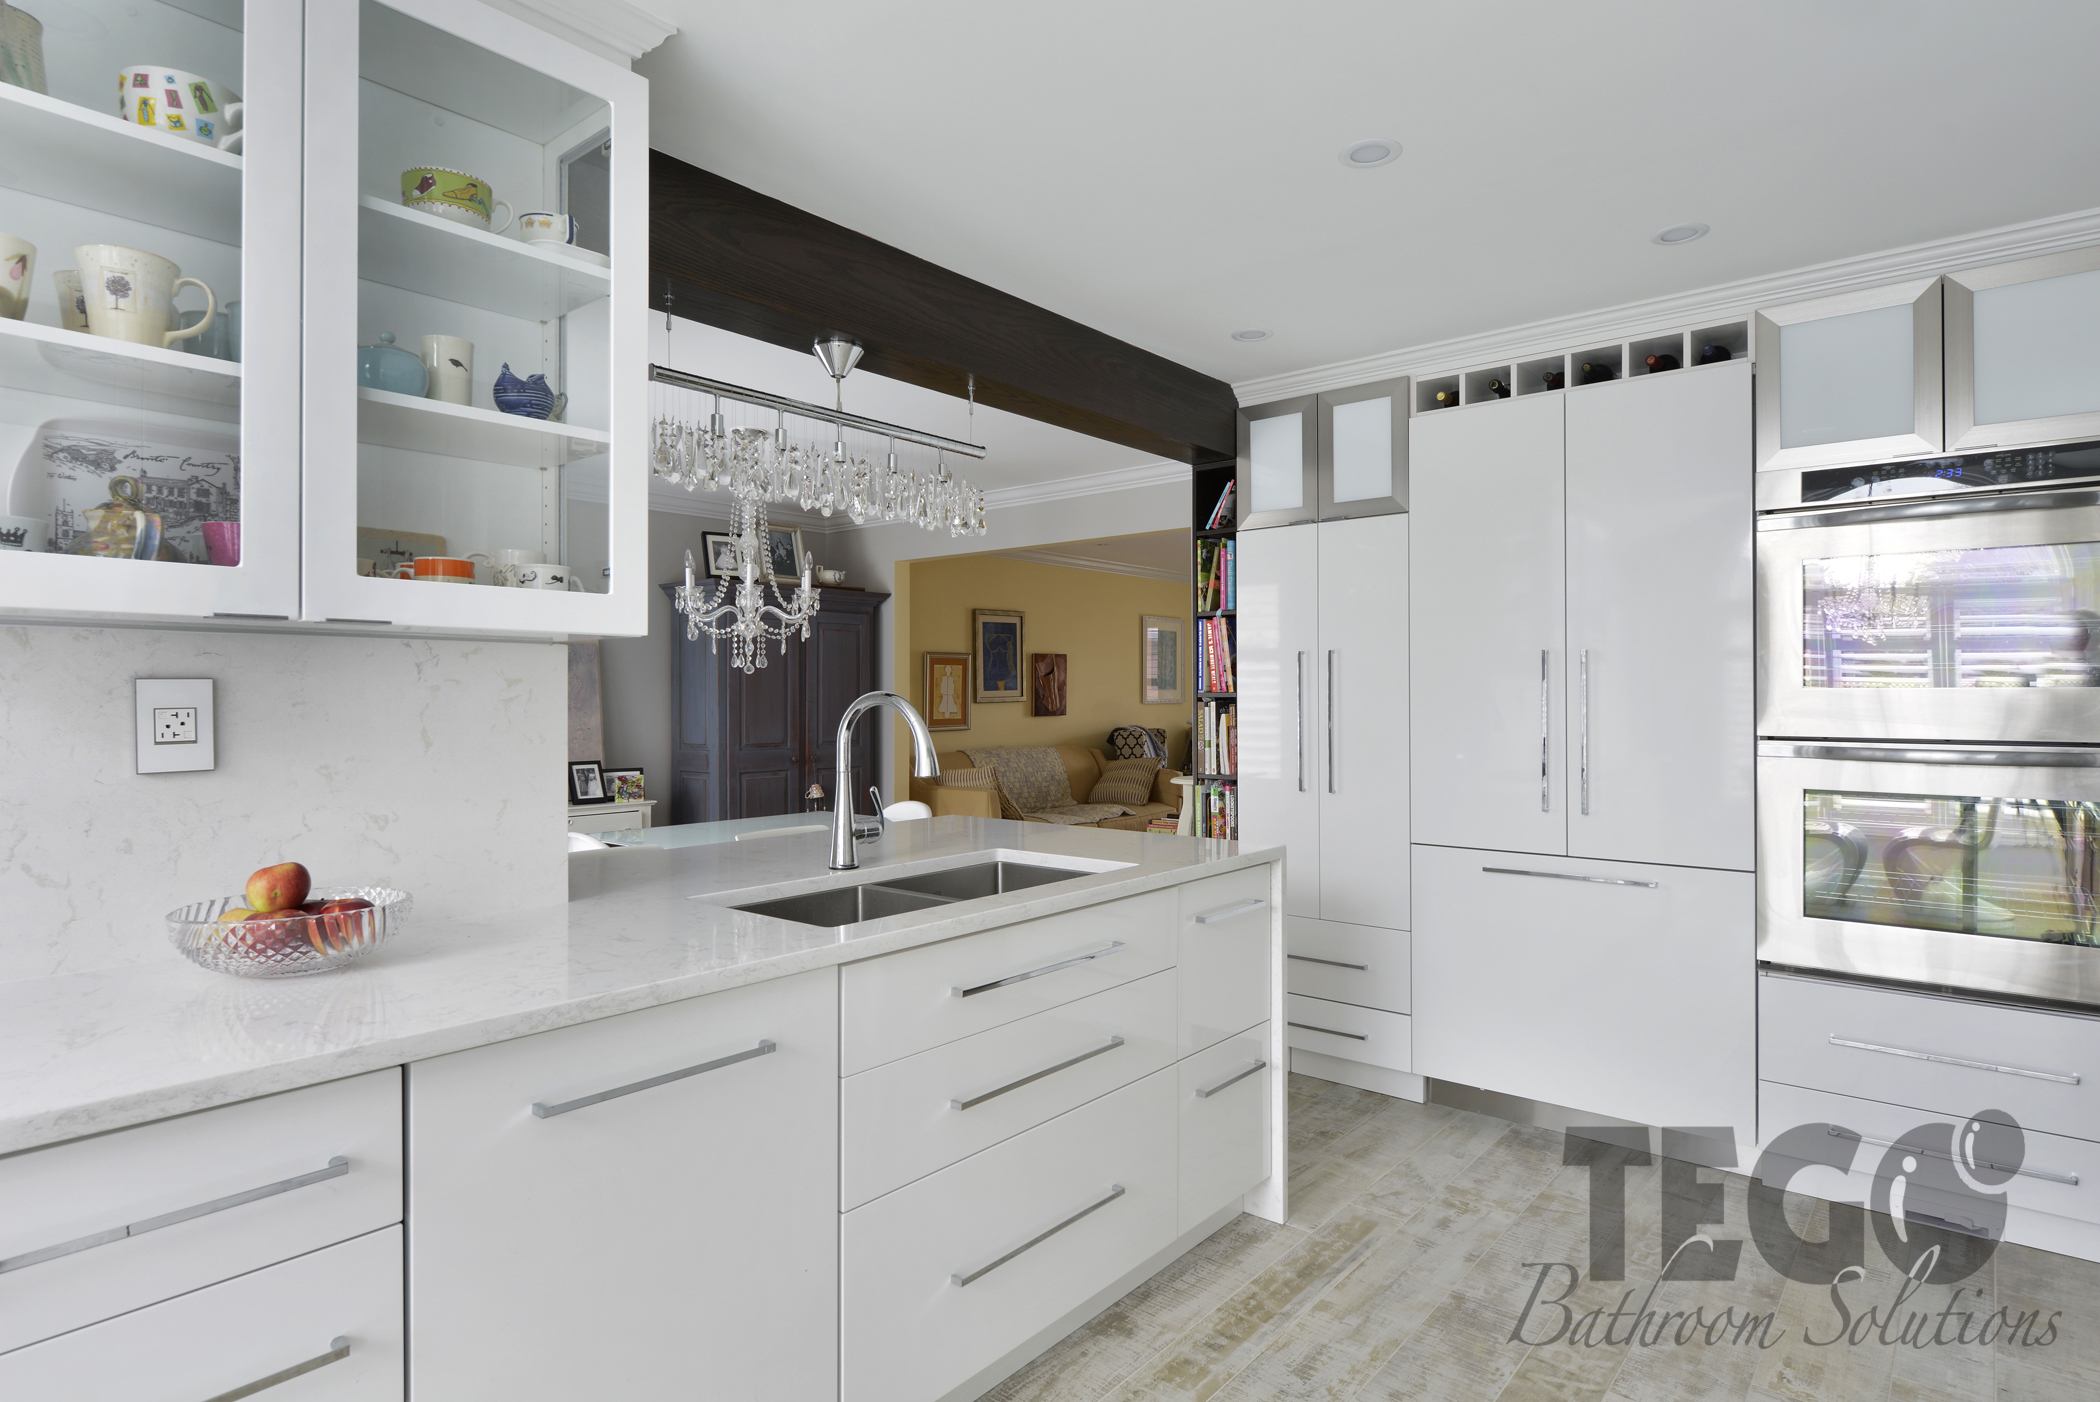 Kitchen bathroom solutions - New Kitchen Supporting Beam Cabinets And Hidden Fridge